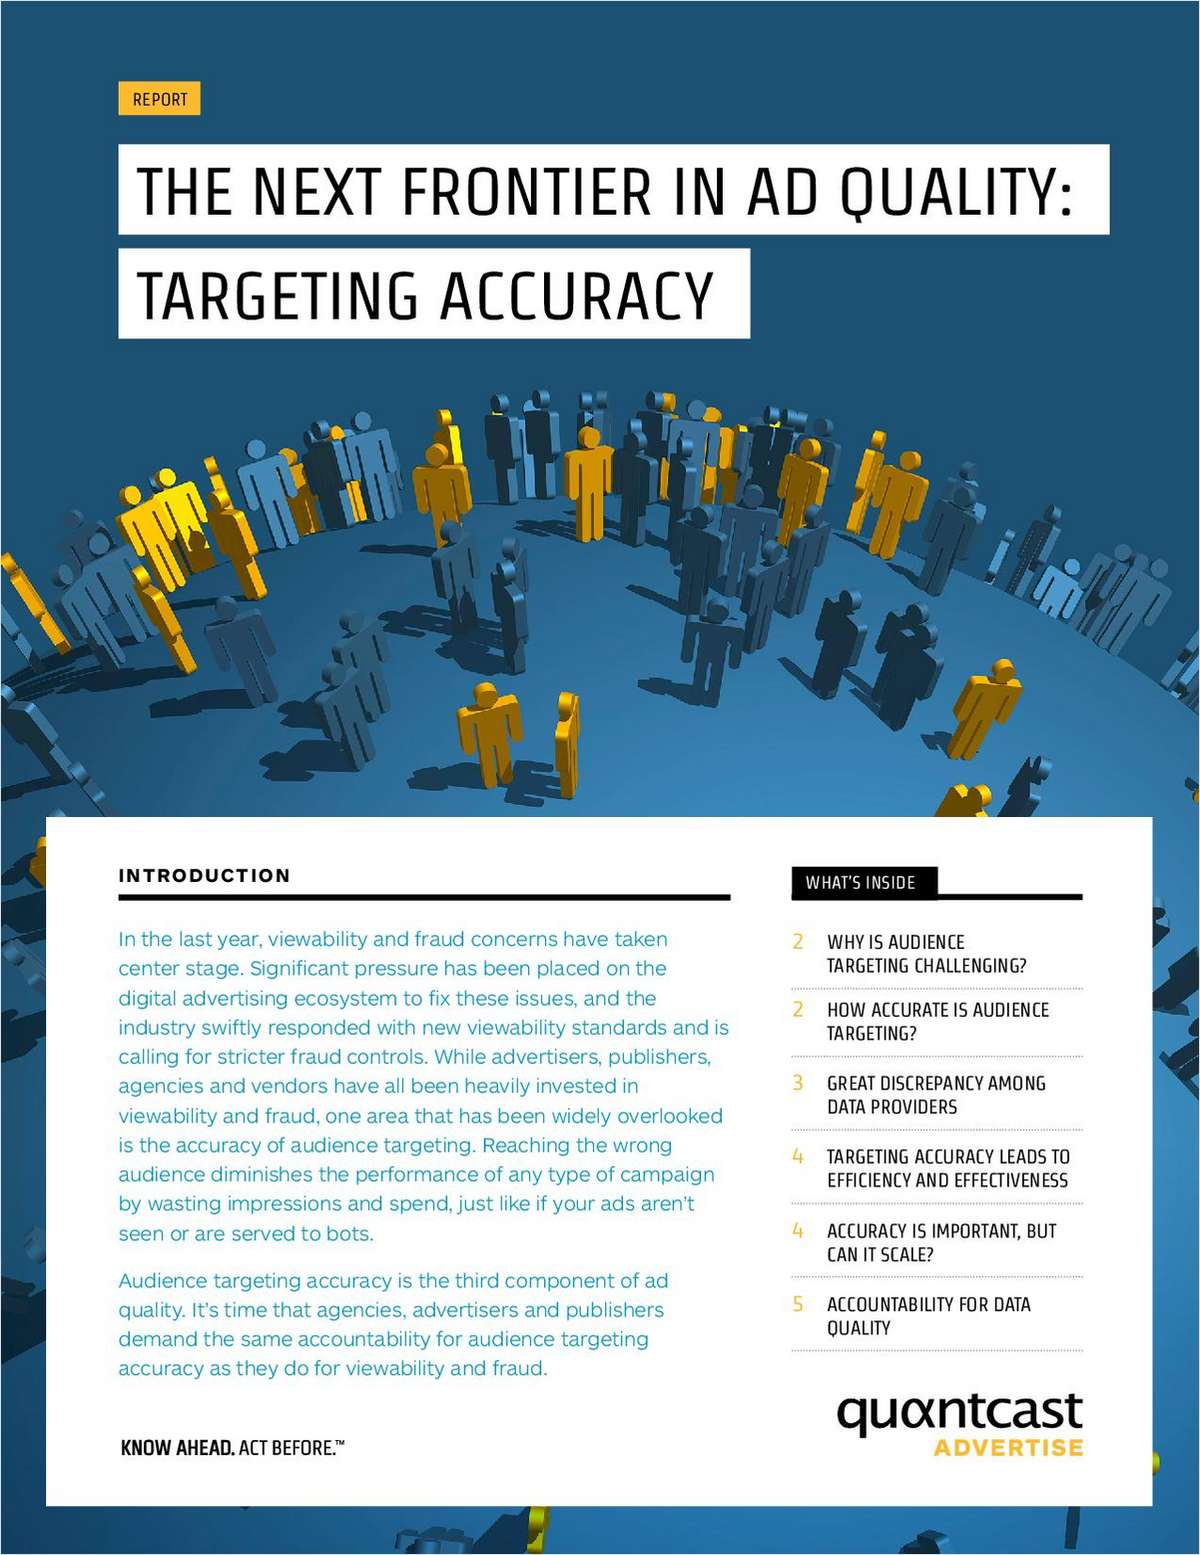 The Next Frontier in Ad Quality: Targeting Accuracy